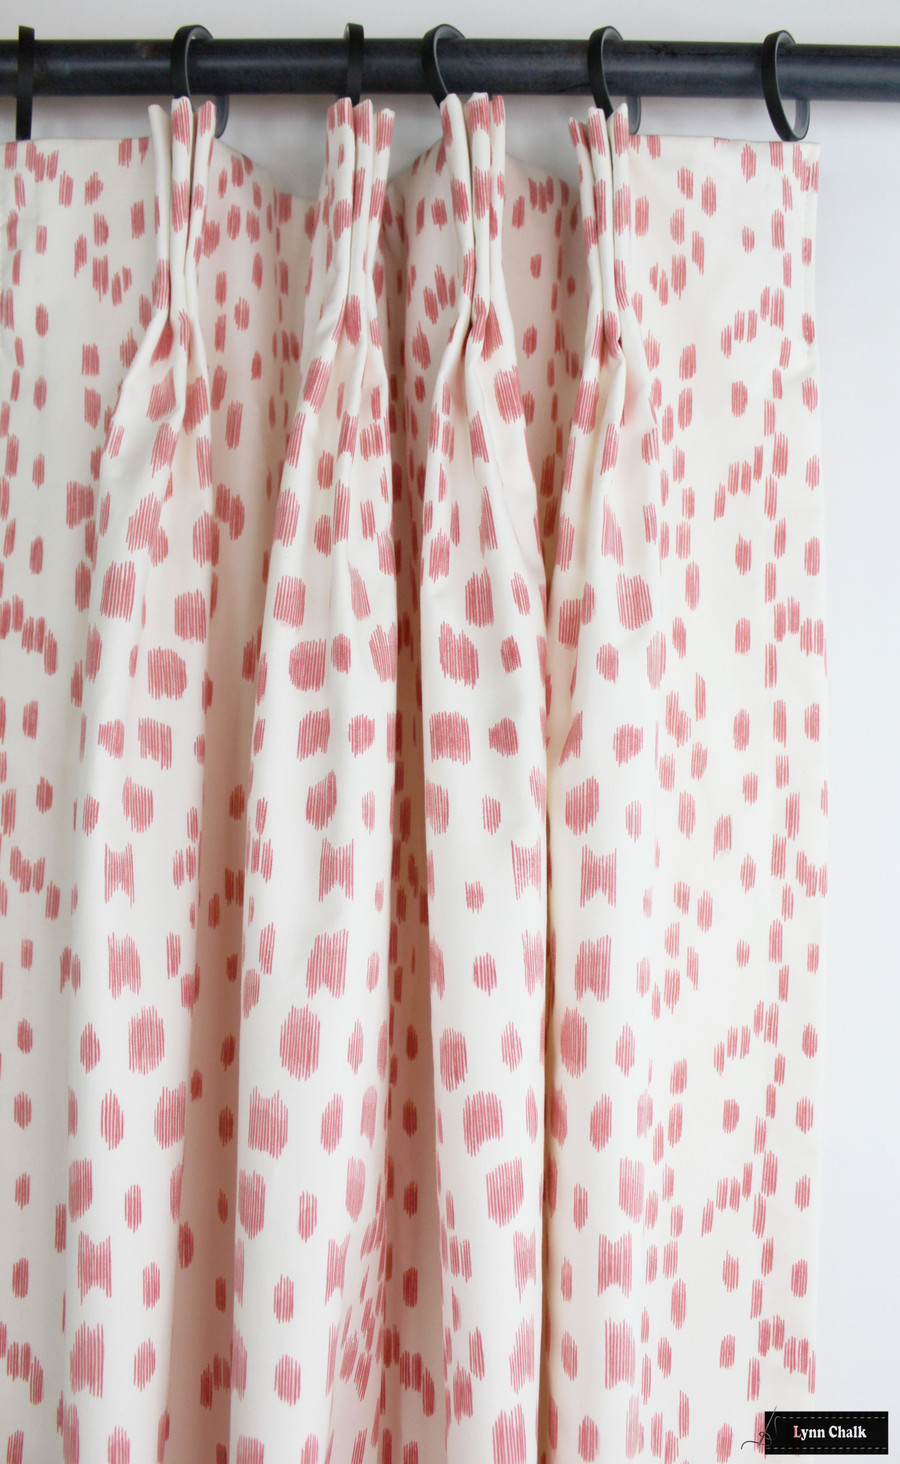 Custom Drapes in Les Touches in Petal (Soft Pink)